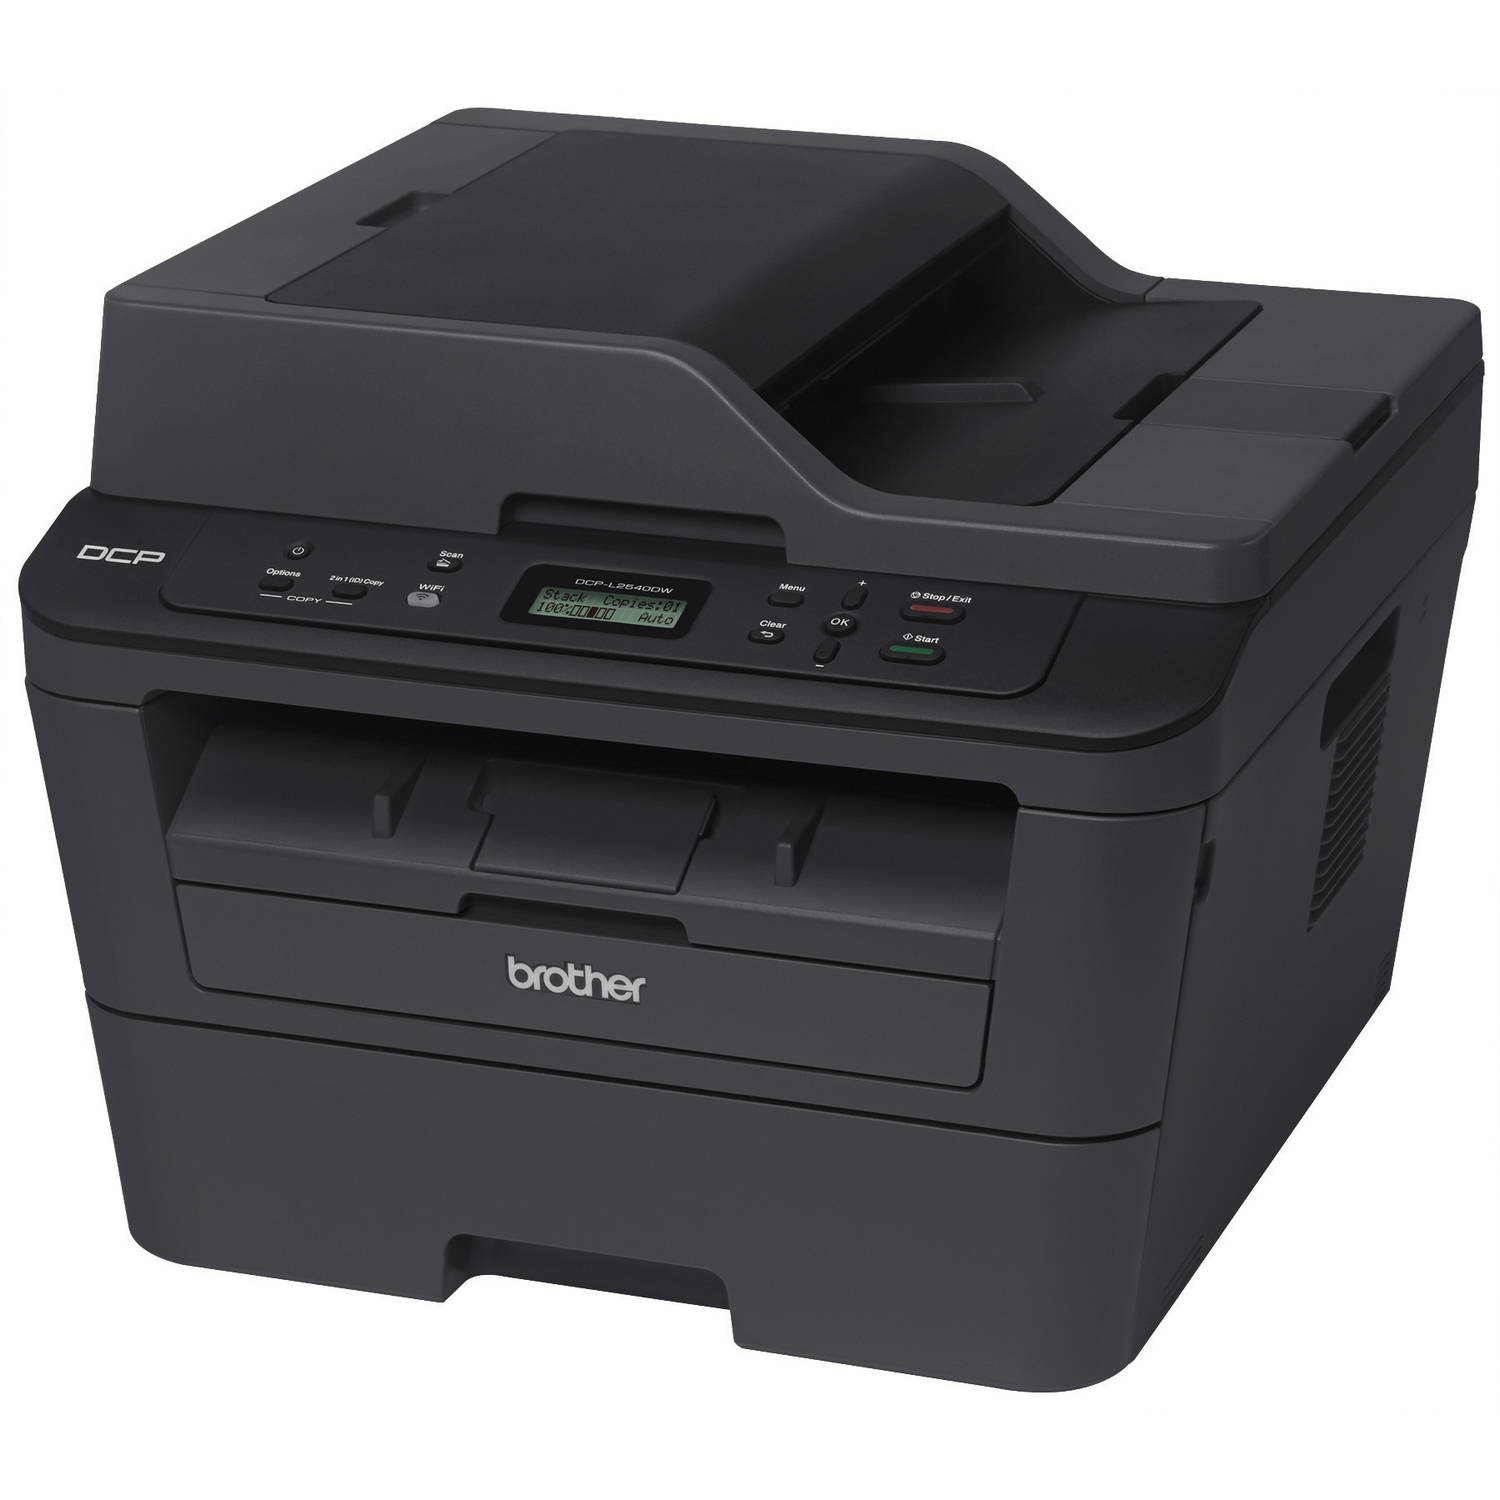 Refurbished Brother DCPL2540DW Mono Laser Printer/Copier/Scanner Machine with Duplex and Wireless